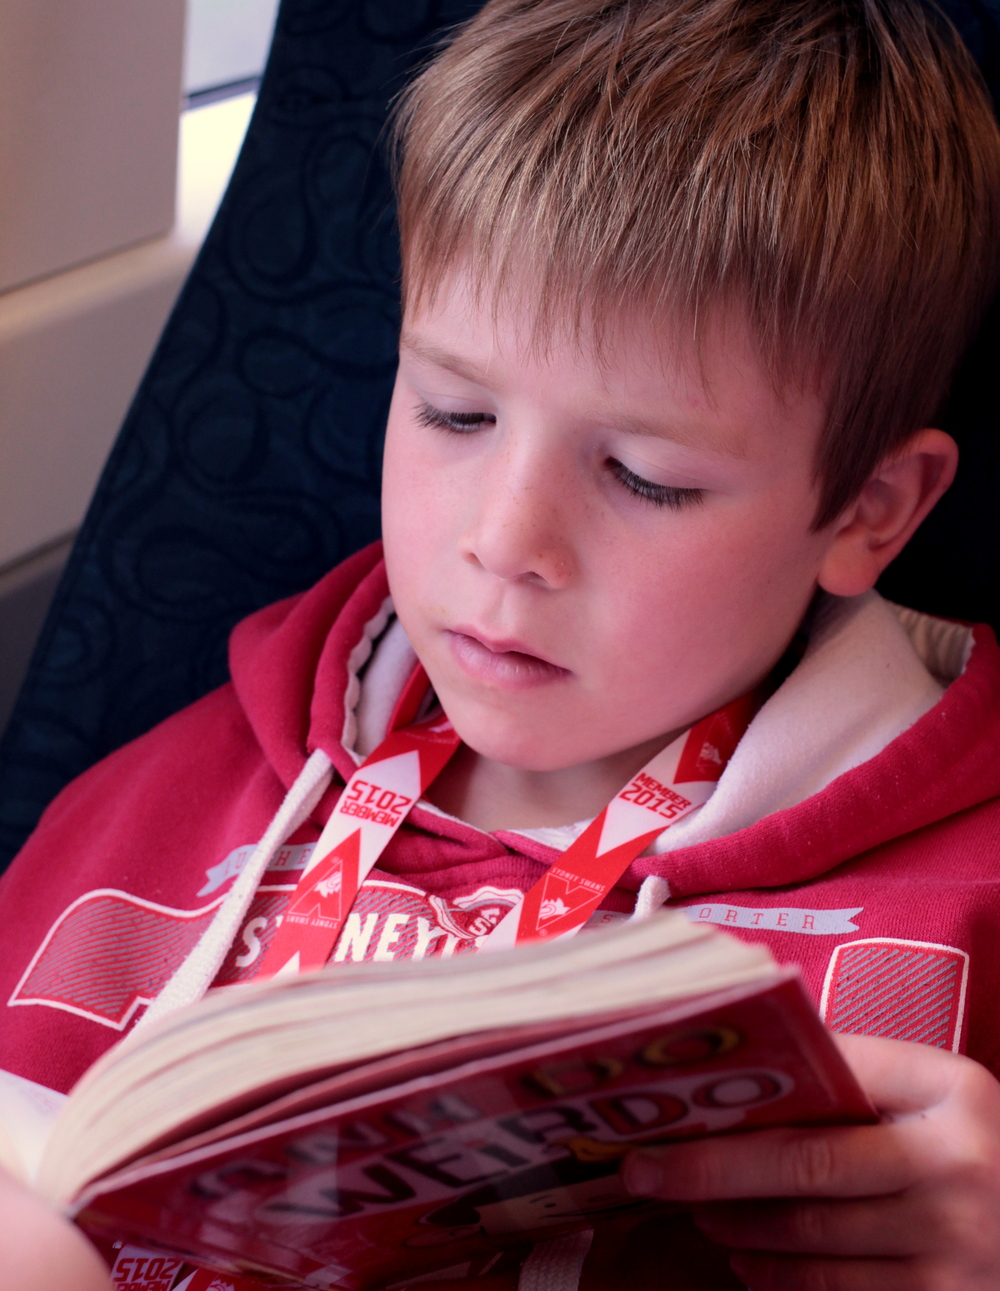 Mr 7 enjoying his book on the train trip. The whole world opens up when you learn to read.